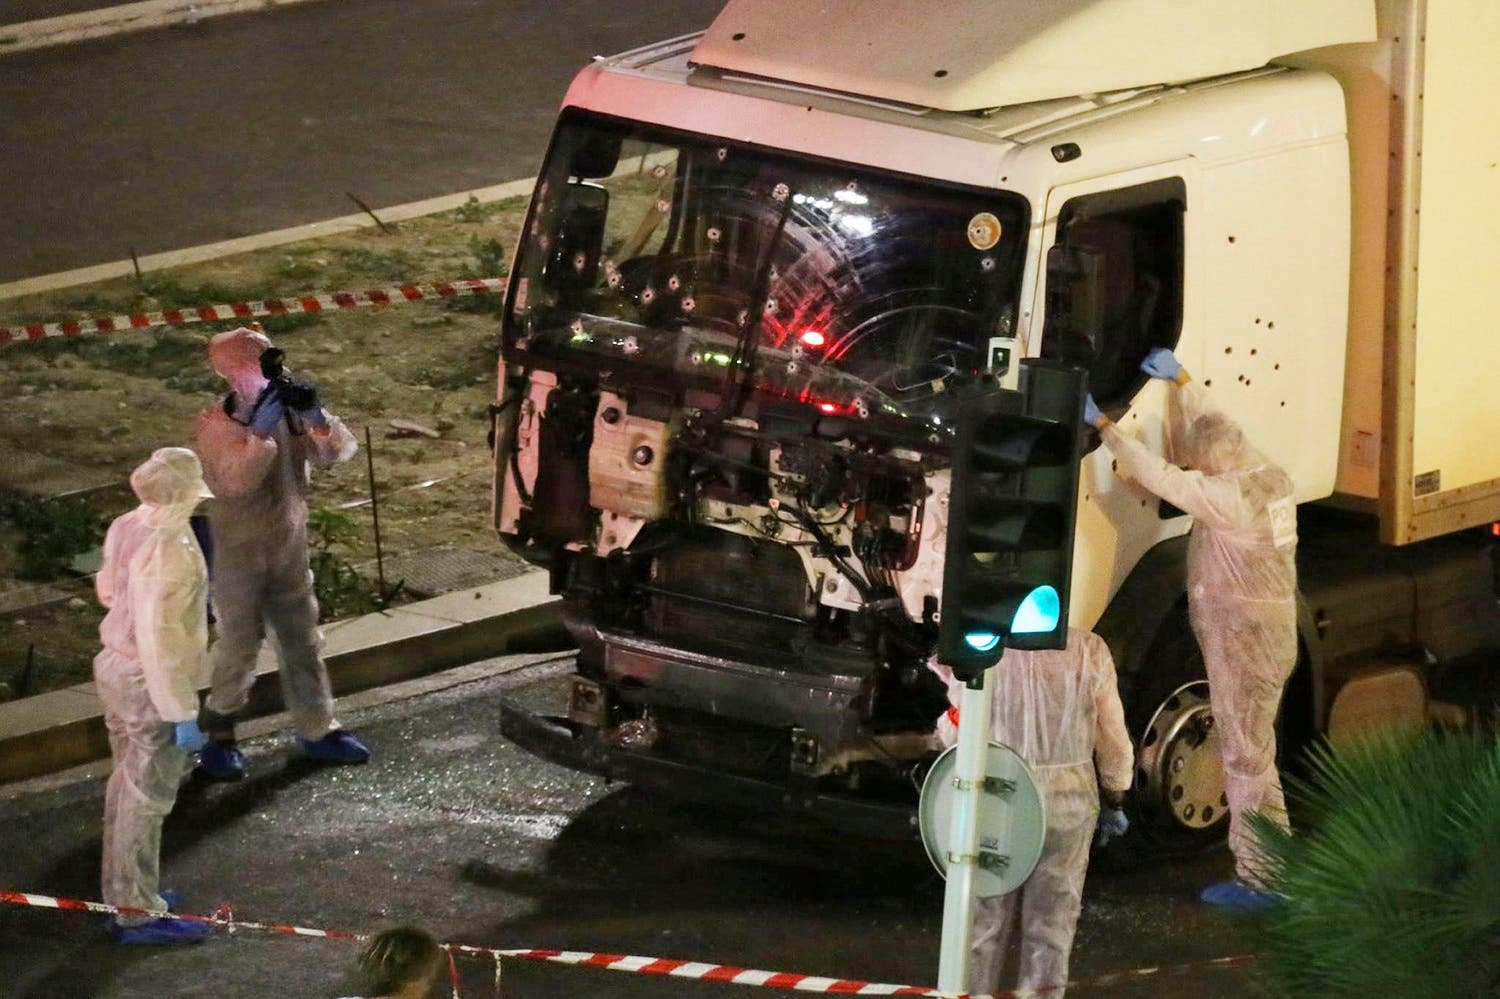 91: Authorities investigate a truck after it plowed through Bastille Day revelers in the French resort city of Nice, France, on July 14, 2016. (AP)